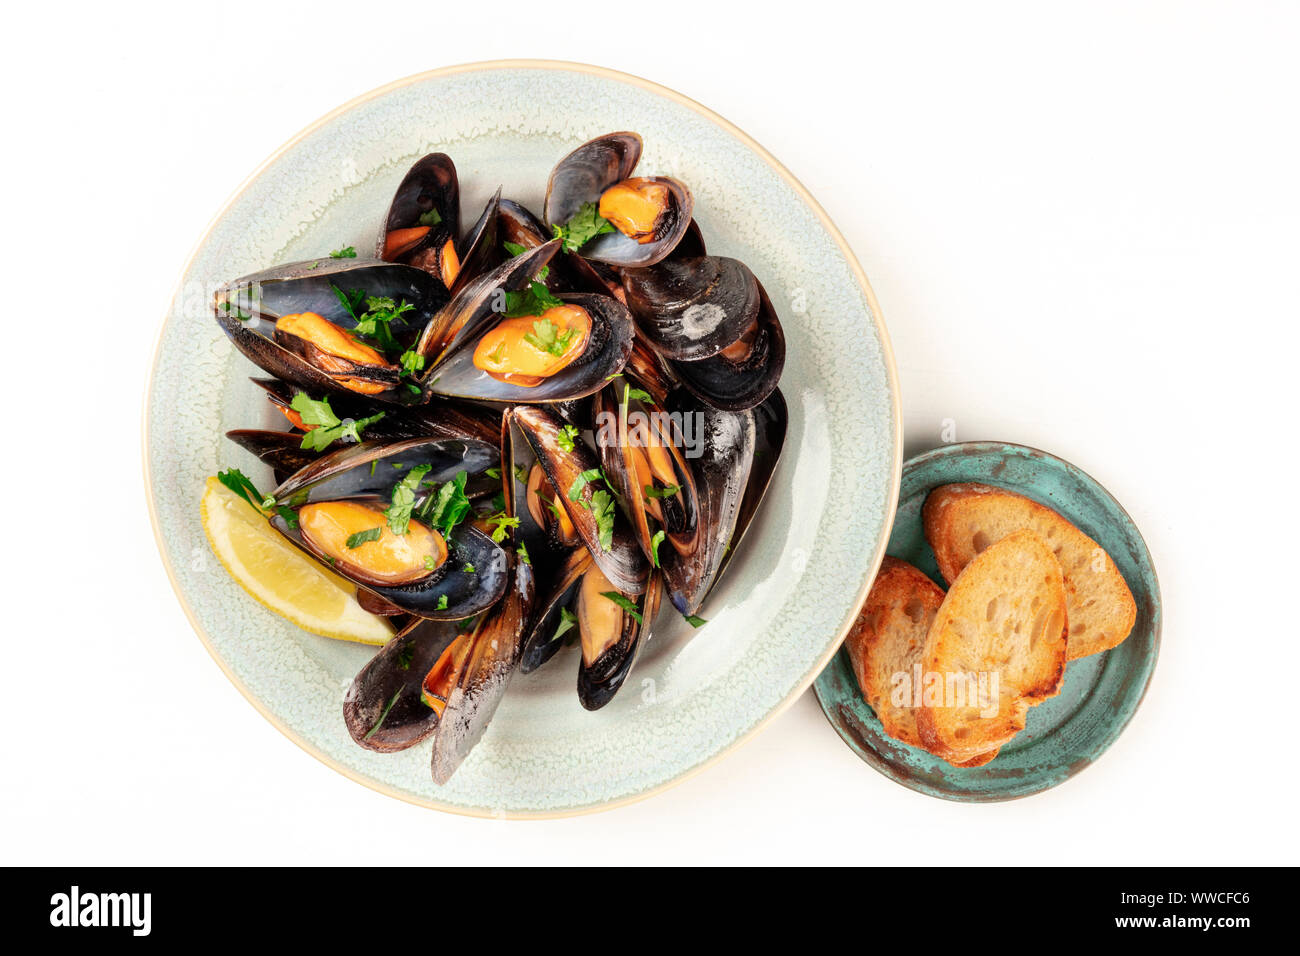 Marinara mussels, shot from the top on a white background with toasted bread and copy space Stock Photo